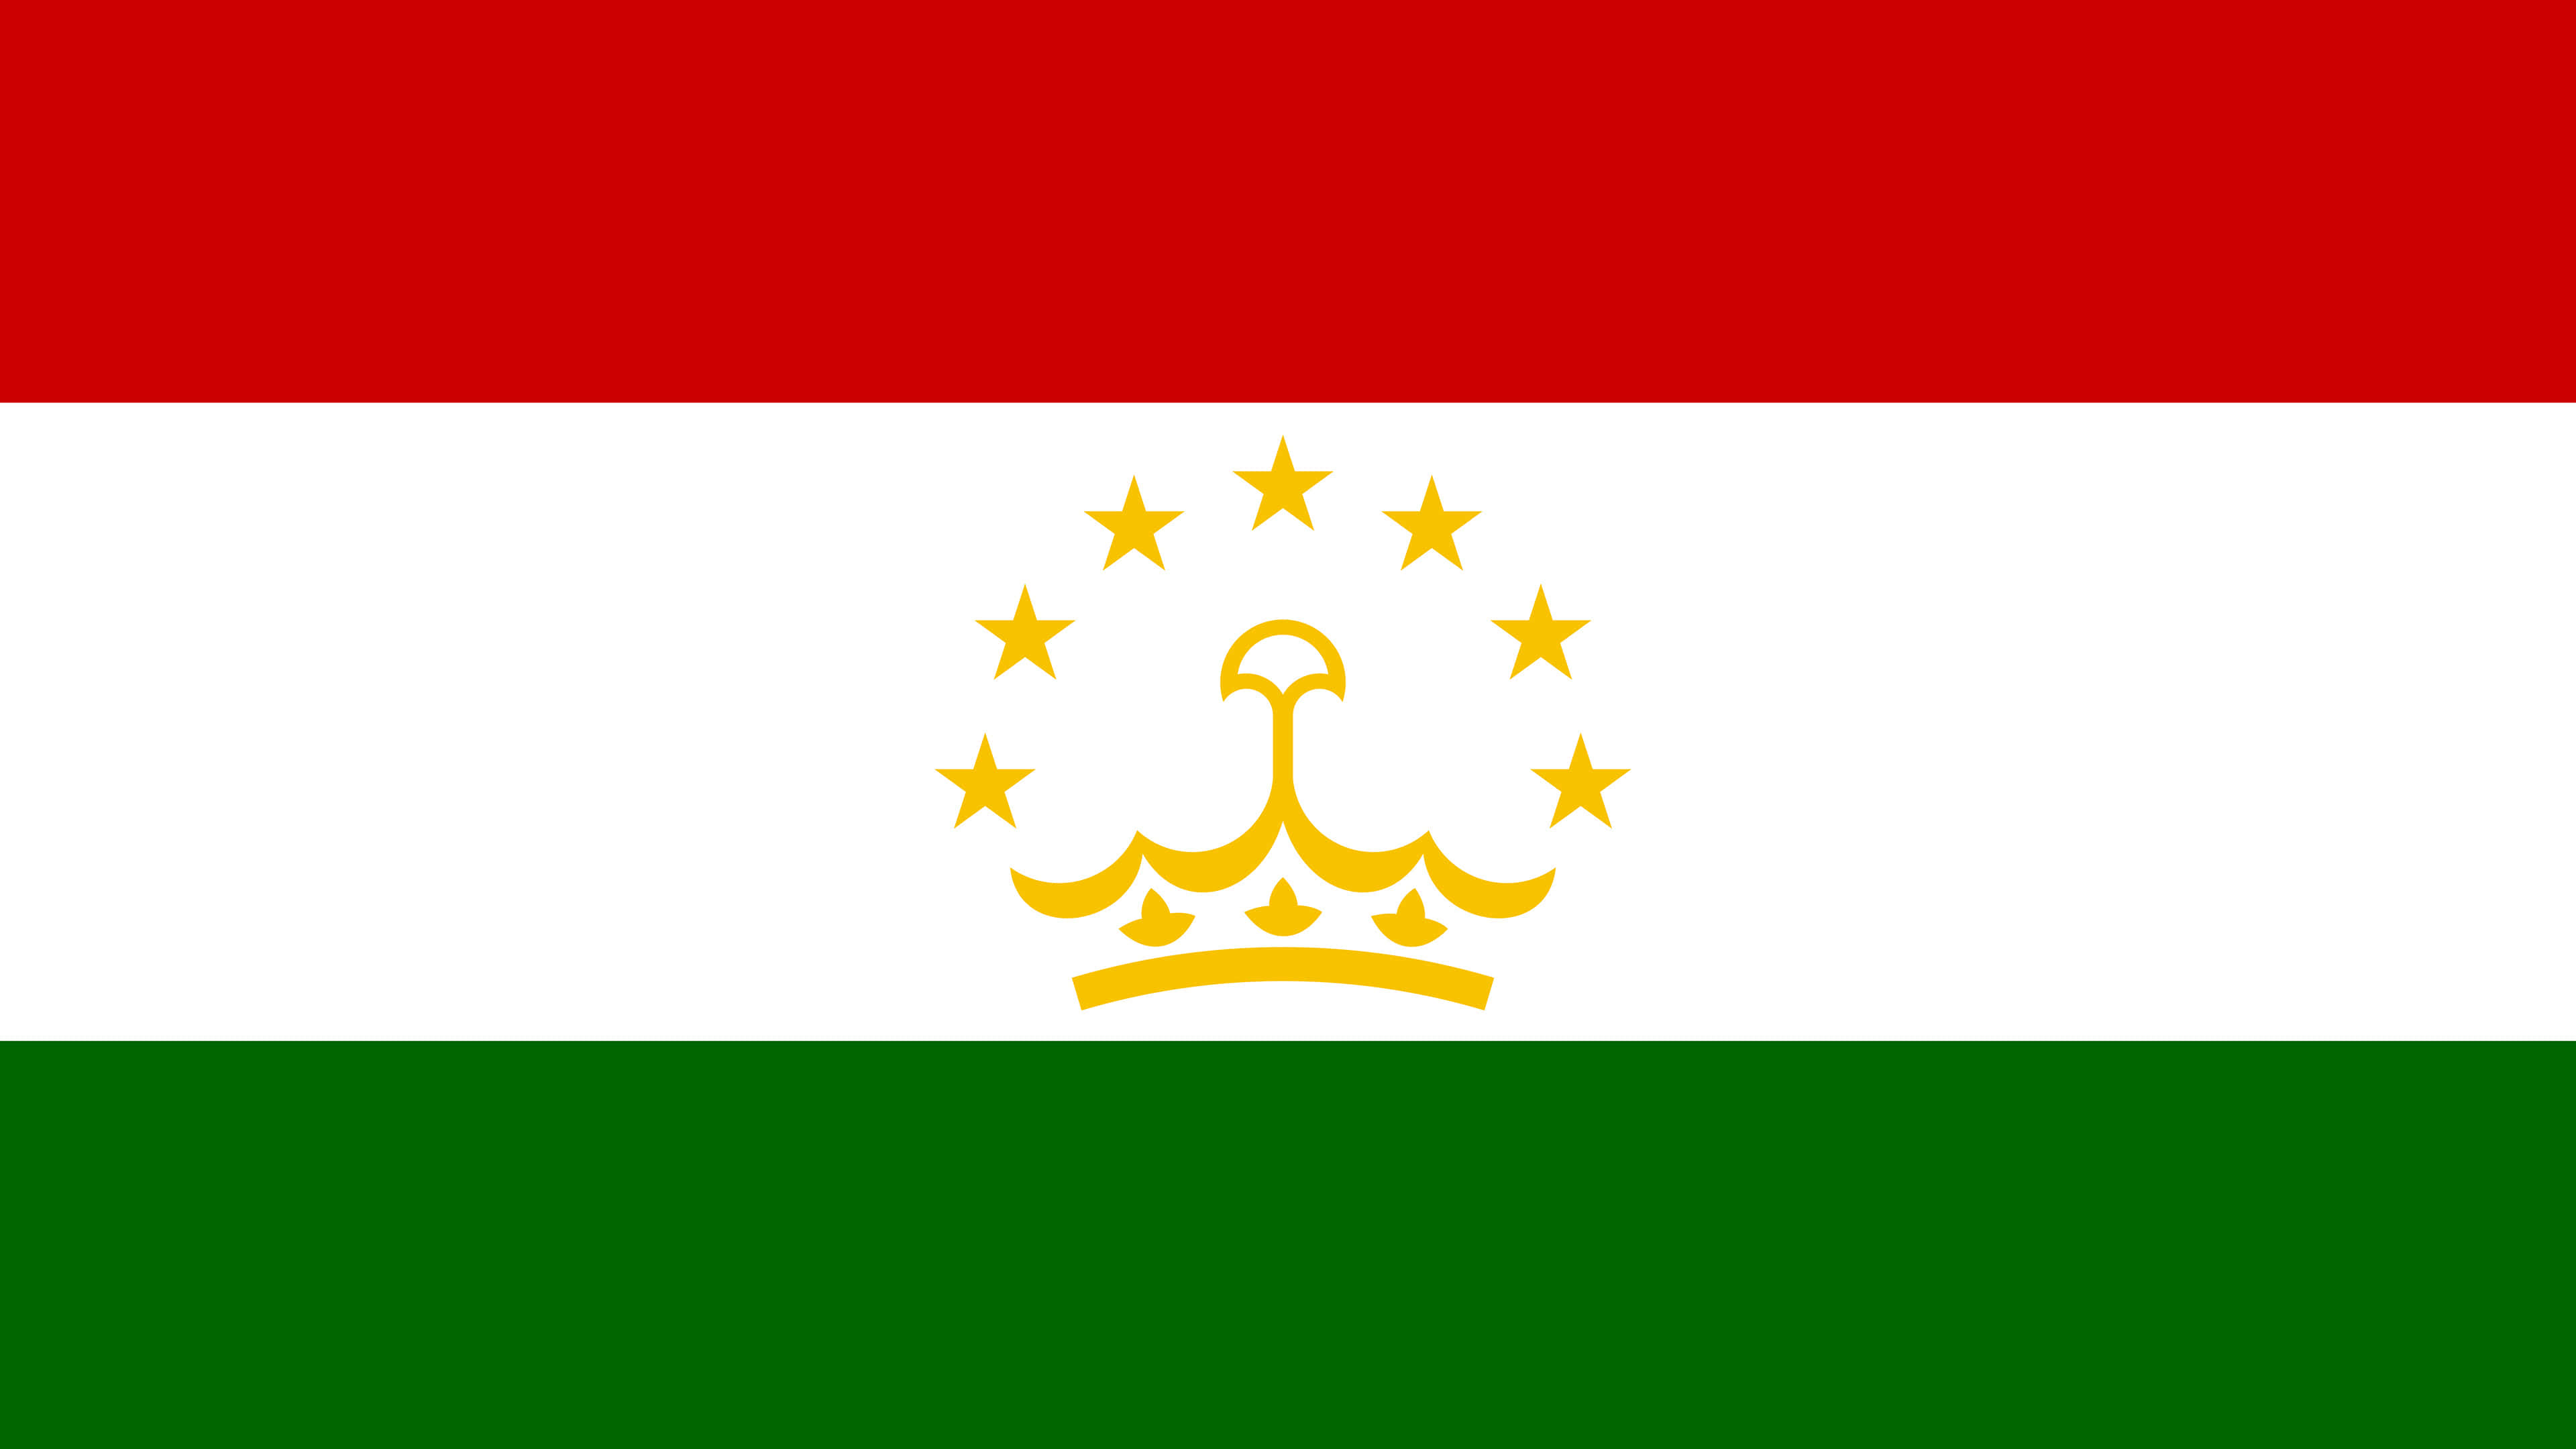 tajikistan flag uhd 4k wallpaper